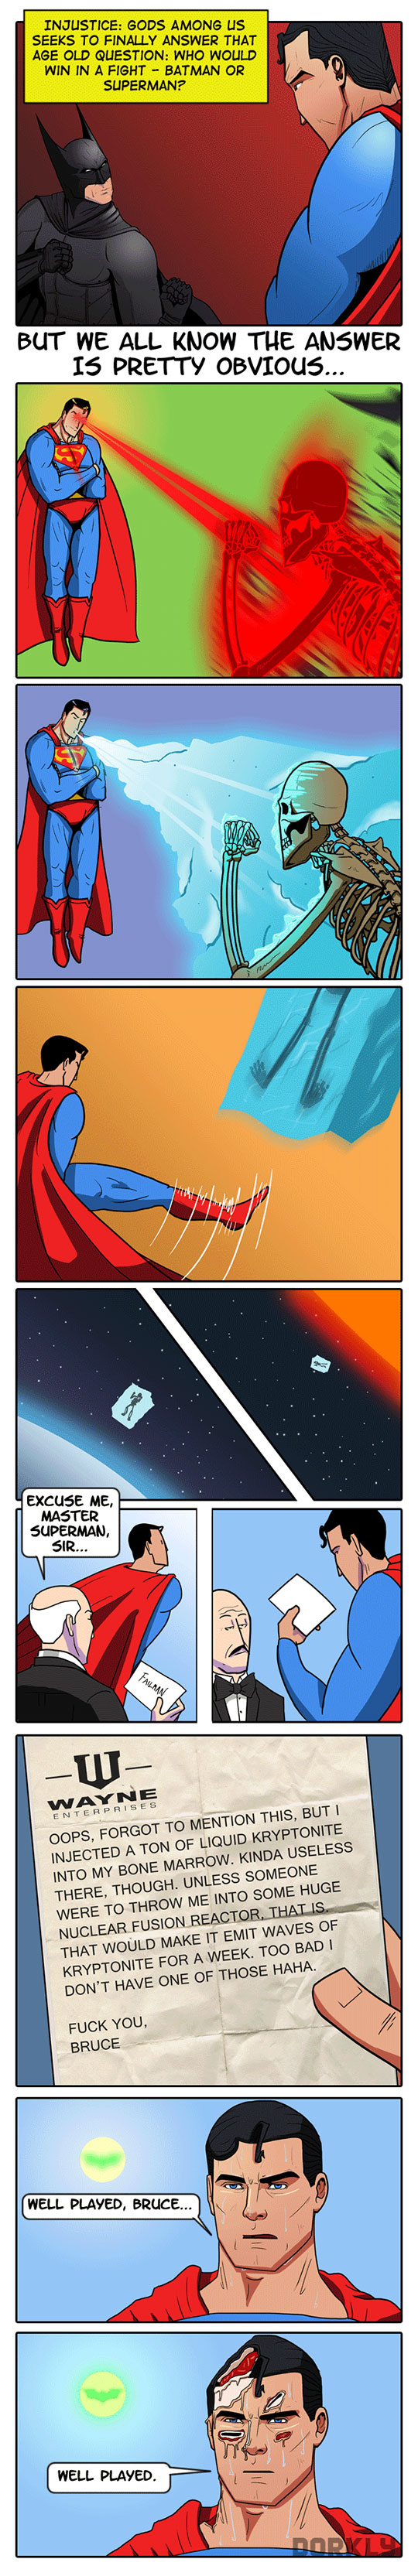 funny-Superman-Batman-trap-melting